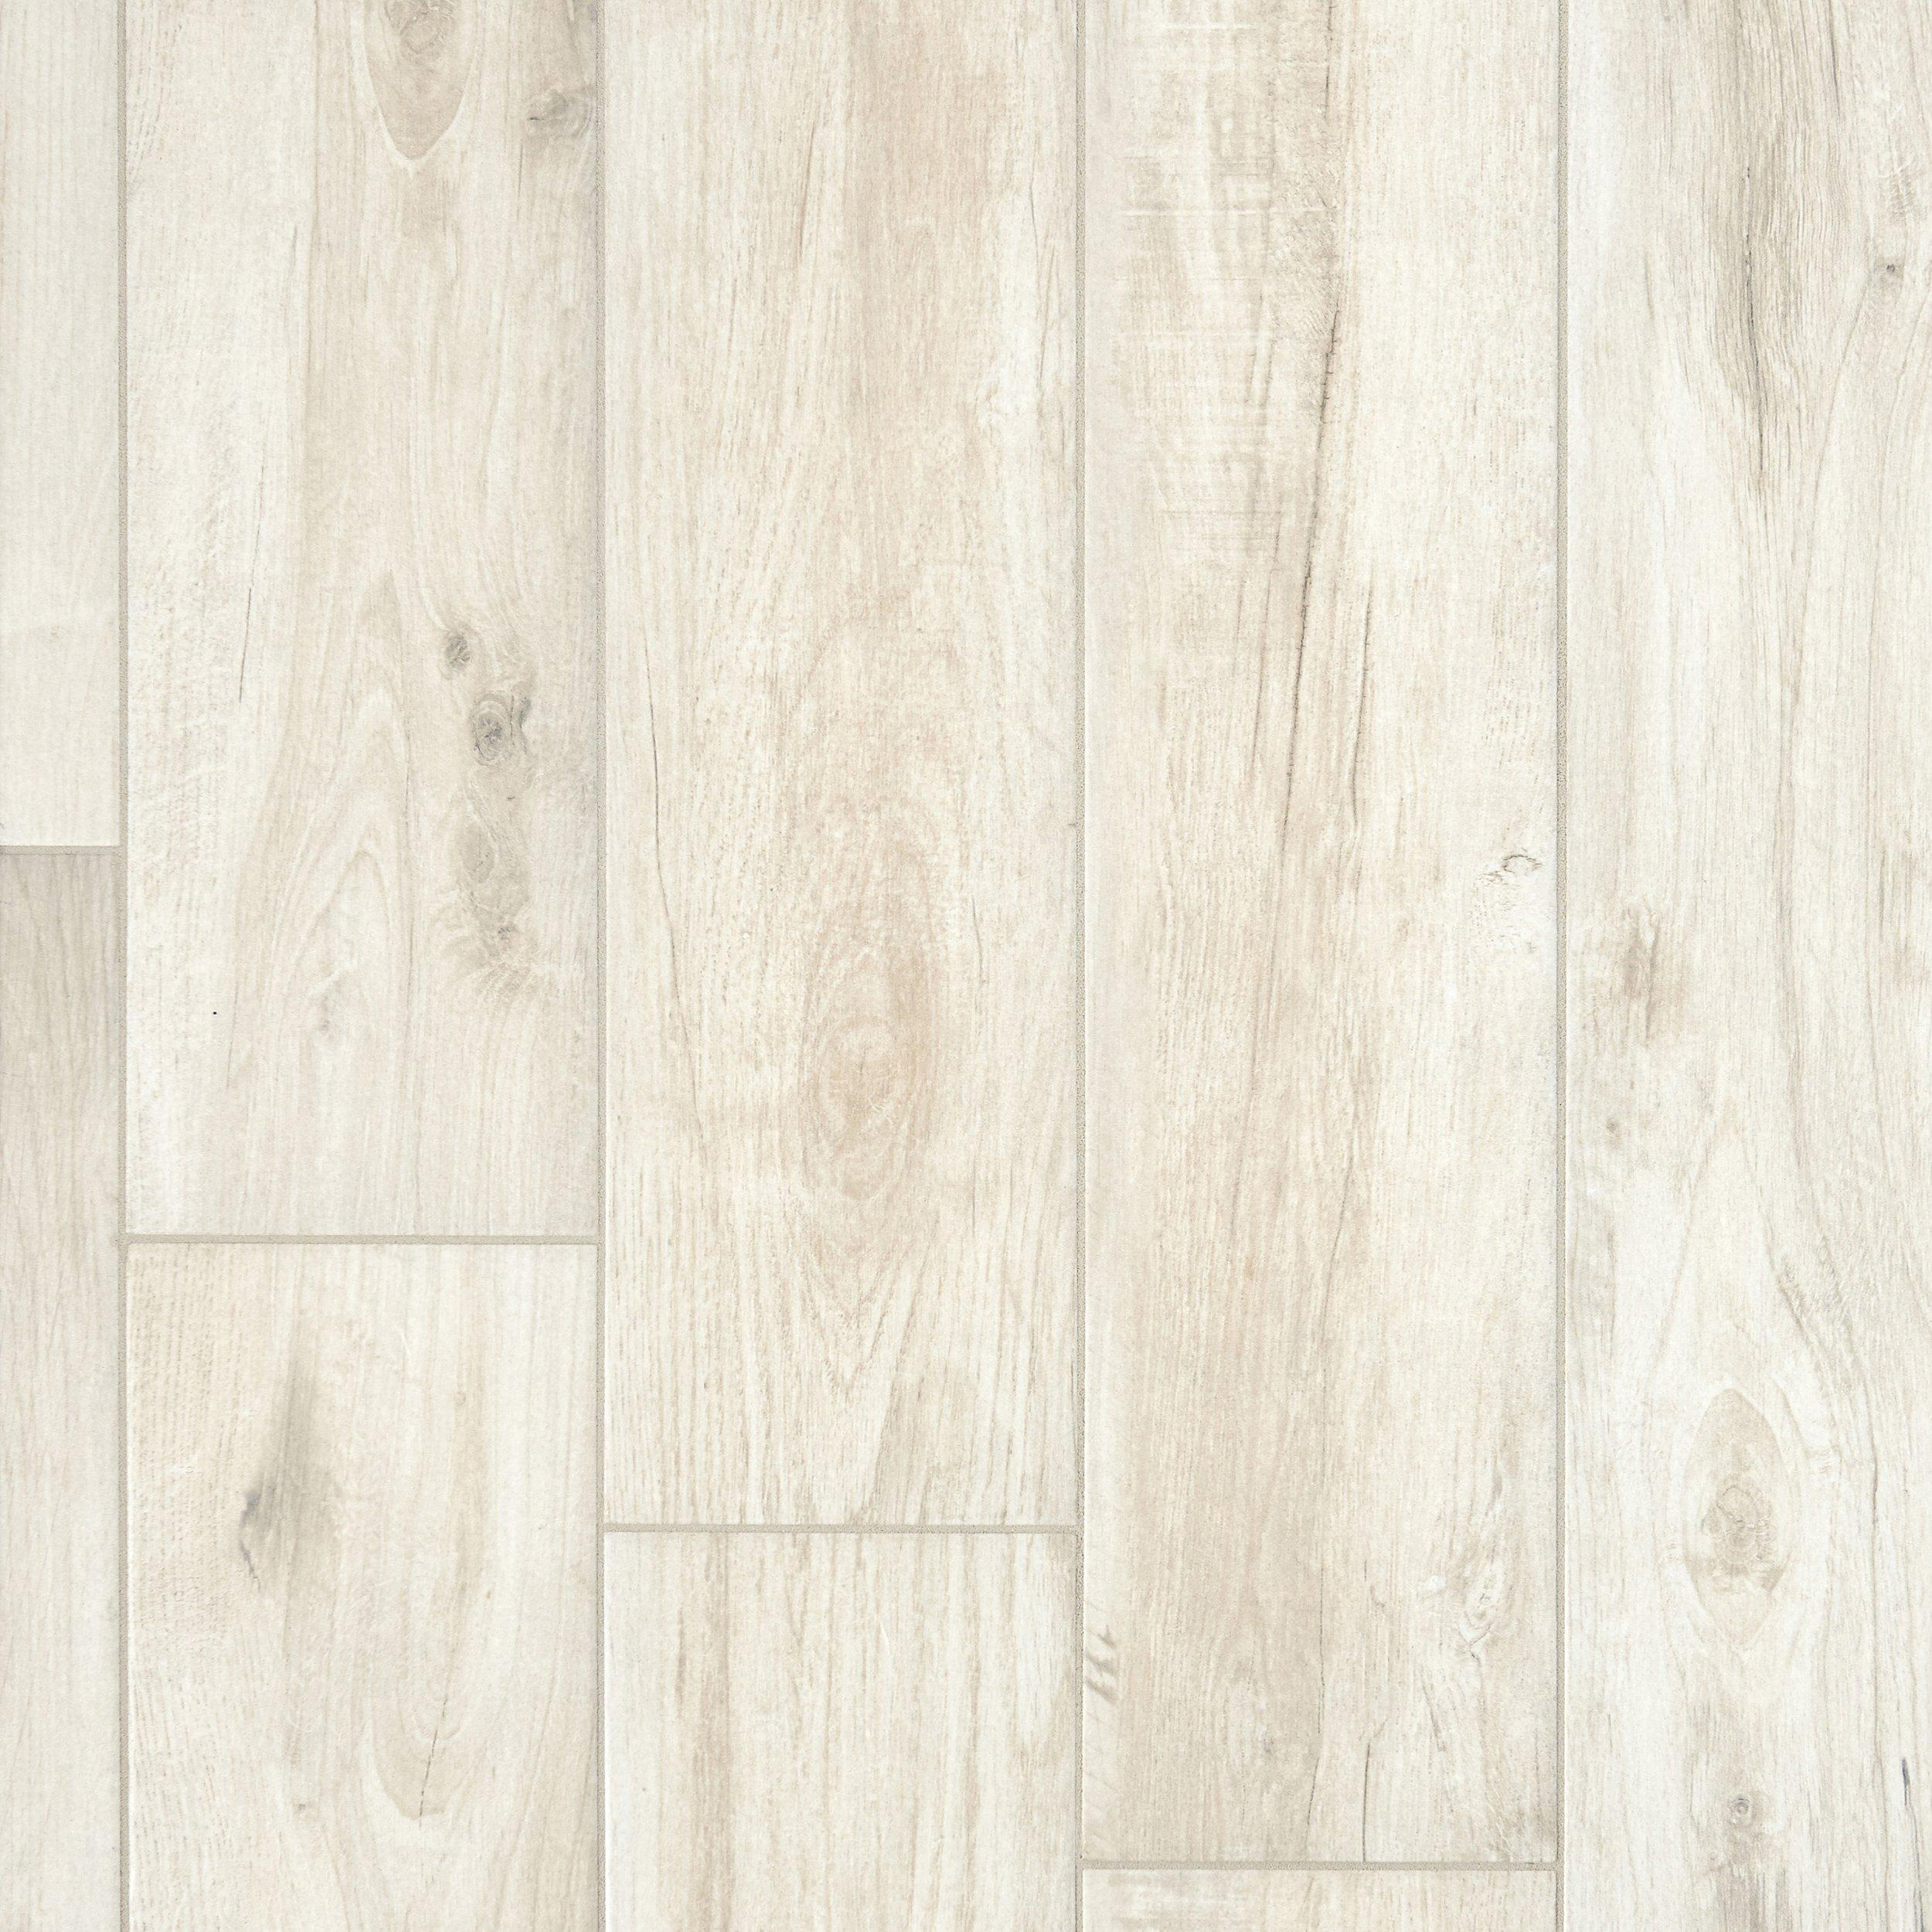 Gentil Savannah White Wood Plank Porcelain Tile   8 X 48   100248236 | Floor And  Decor